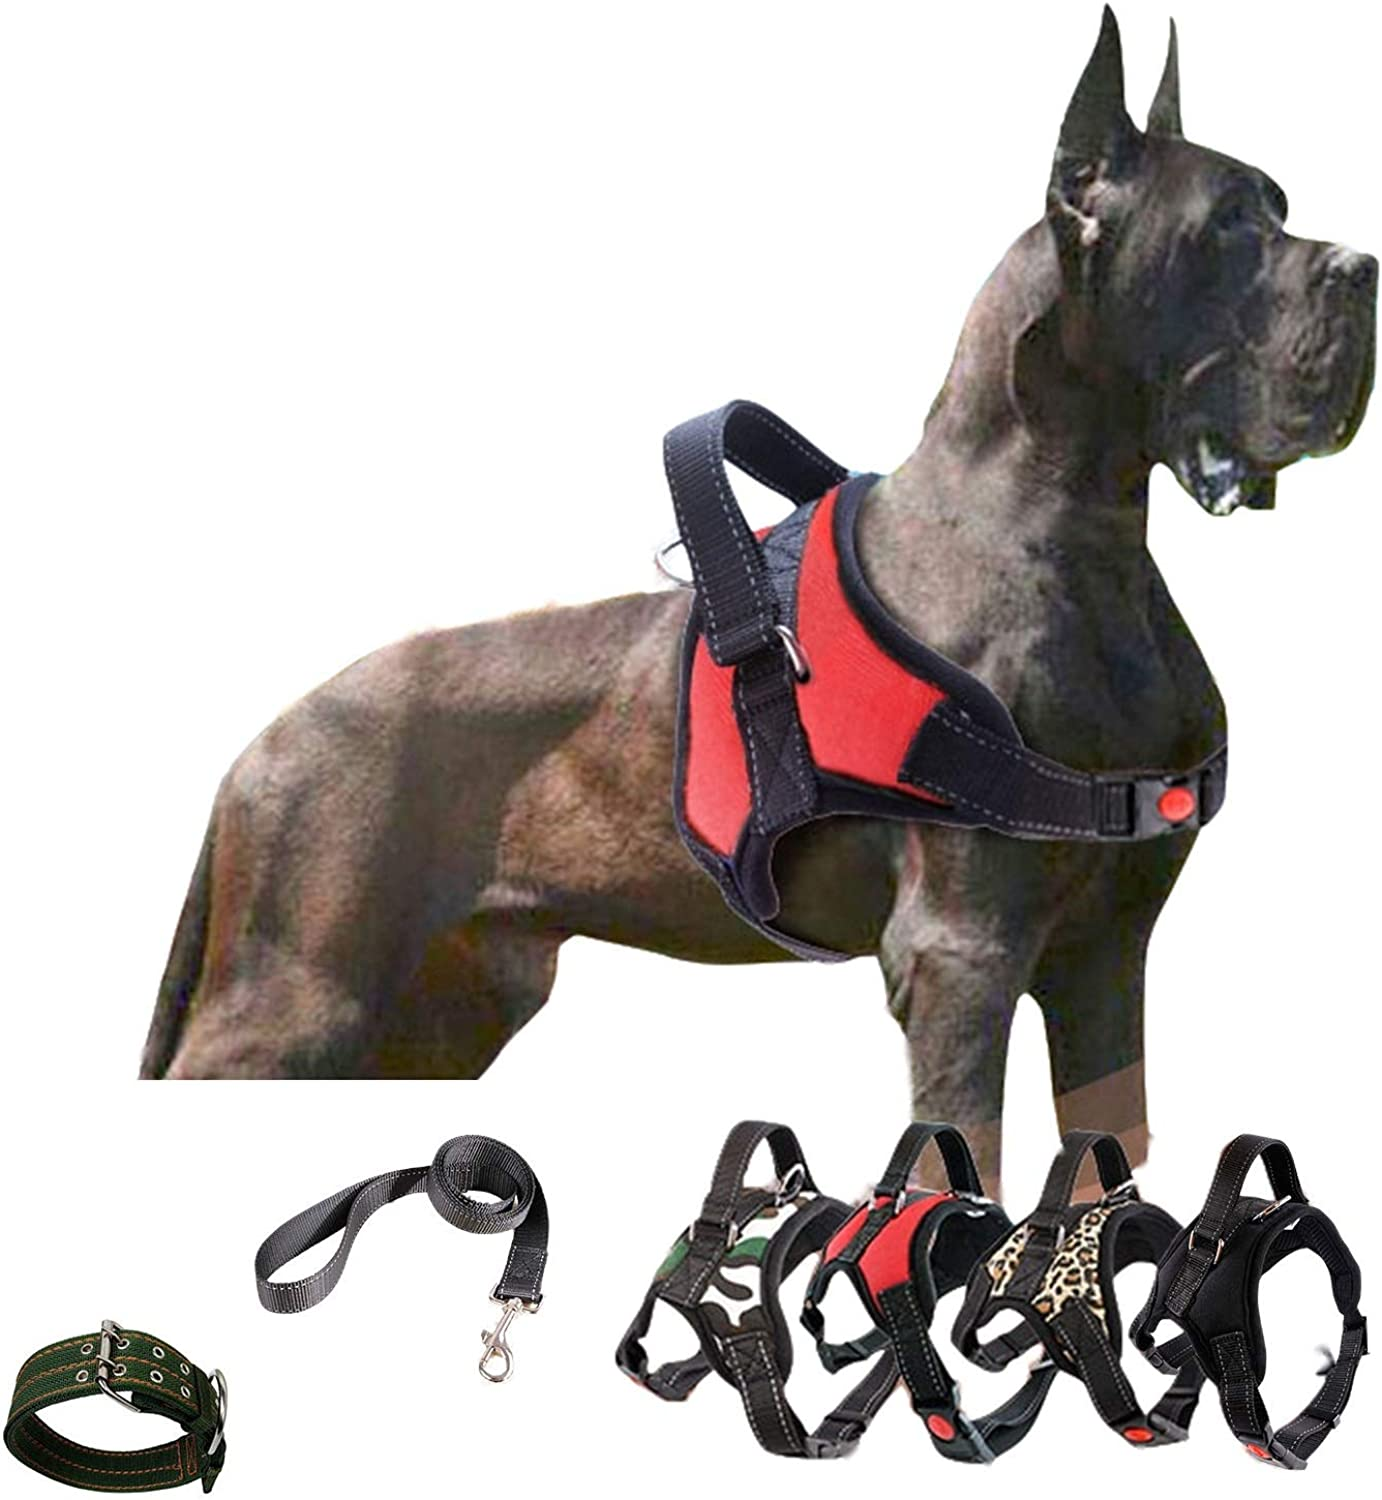 KimiGo Larger Dog Adjustable Outdoor Safty Vest Harness for Training Walking Running with Reflective Traction Rope with Canvas Collar Size M Red